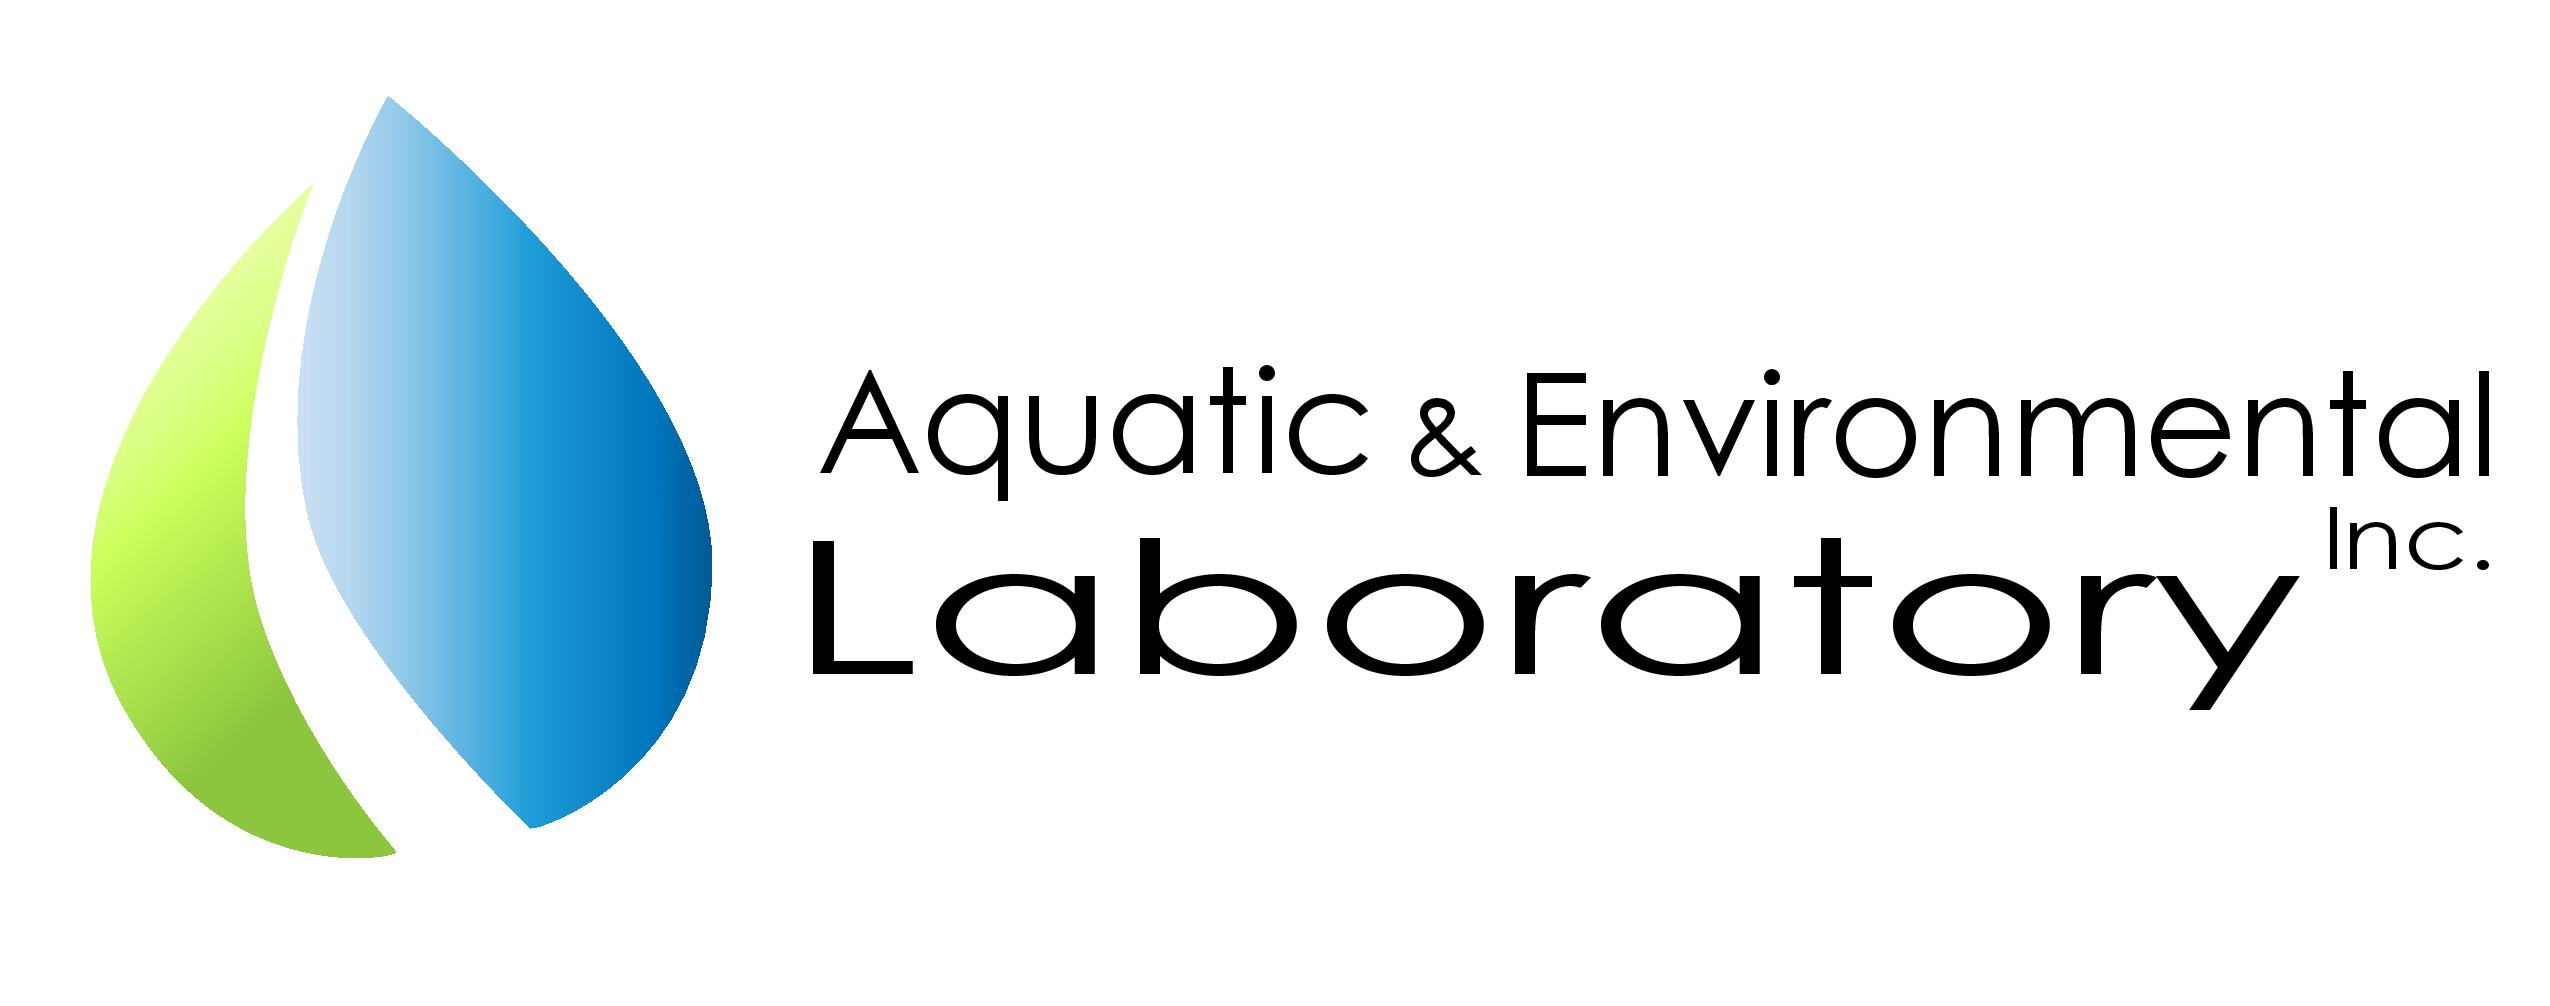 Aquatic and Environmental Laboratory